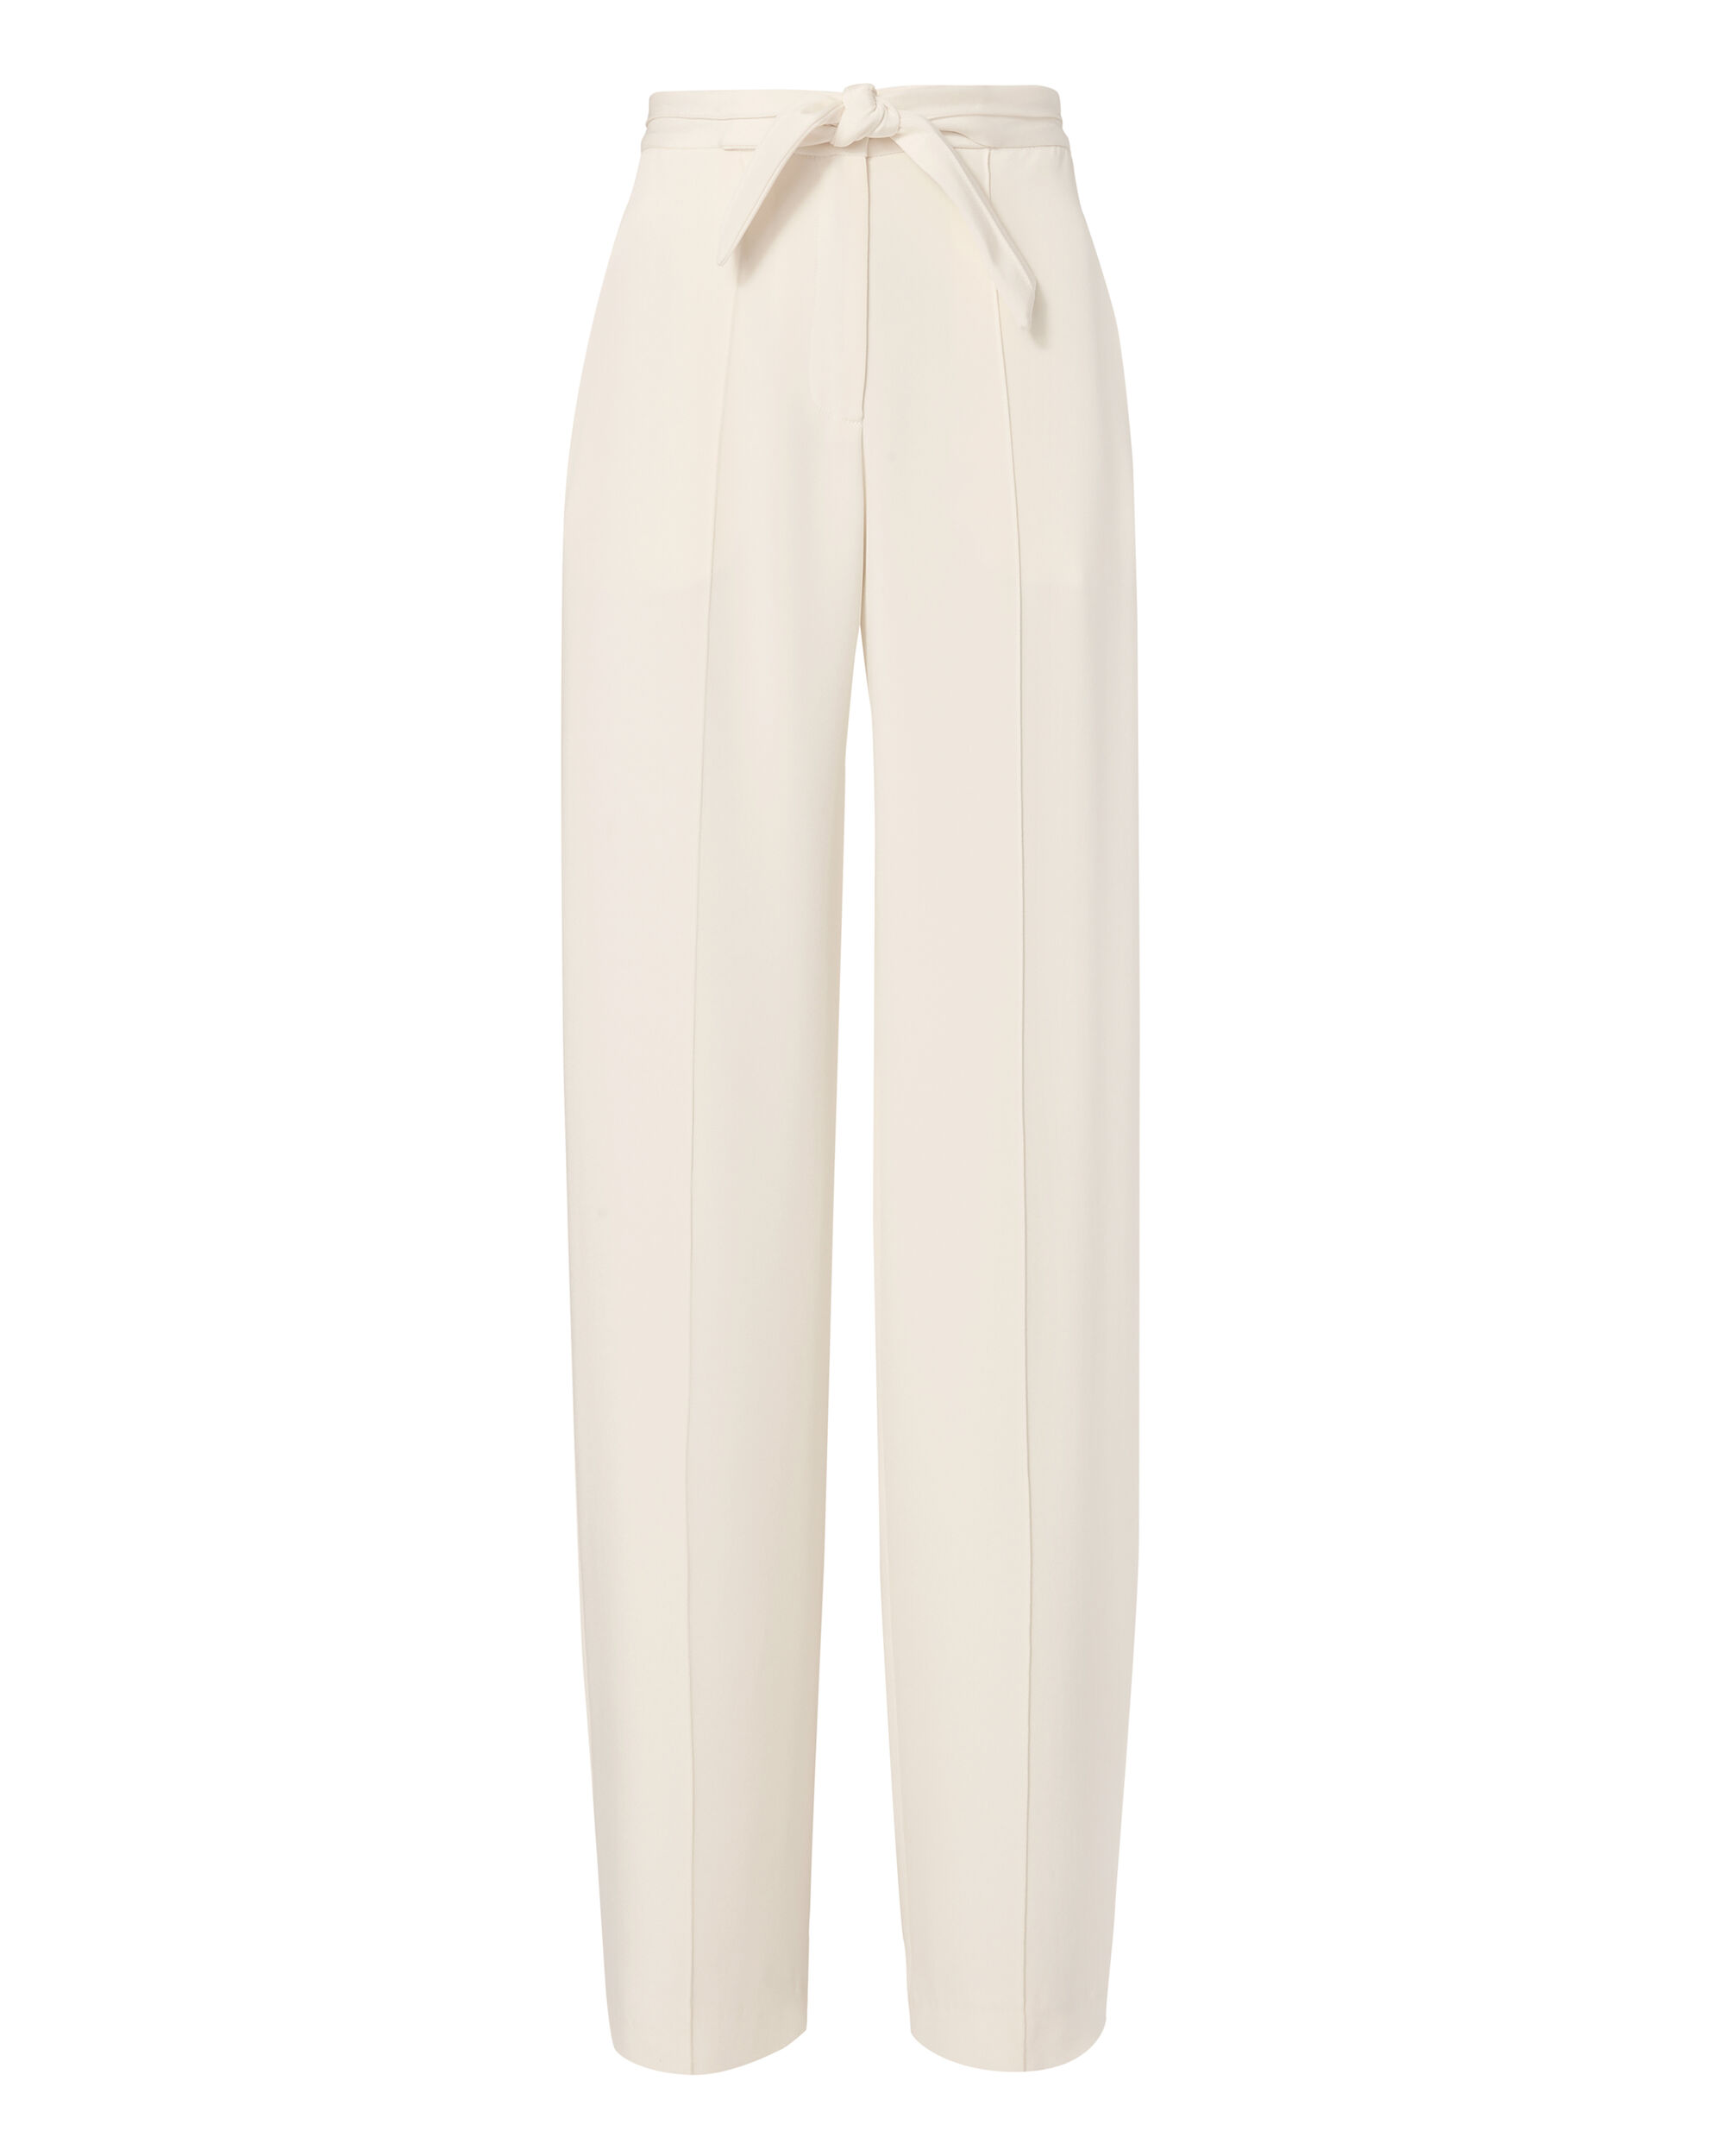 Watz Trousers, IVORY, hi-res